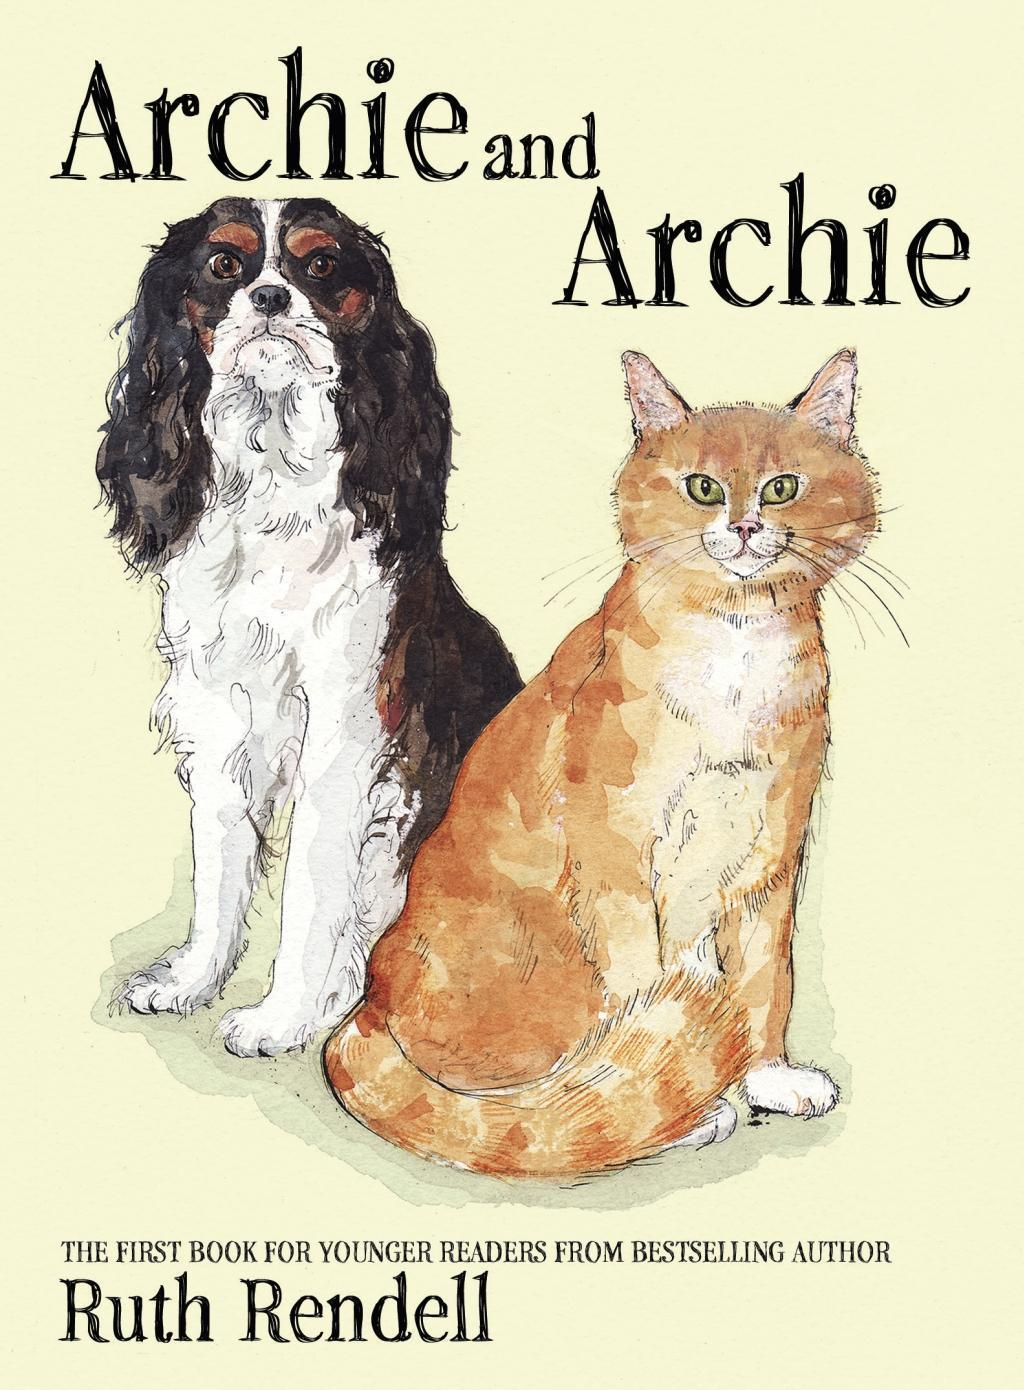 Archie and Archie